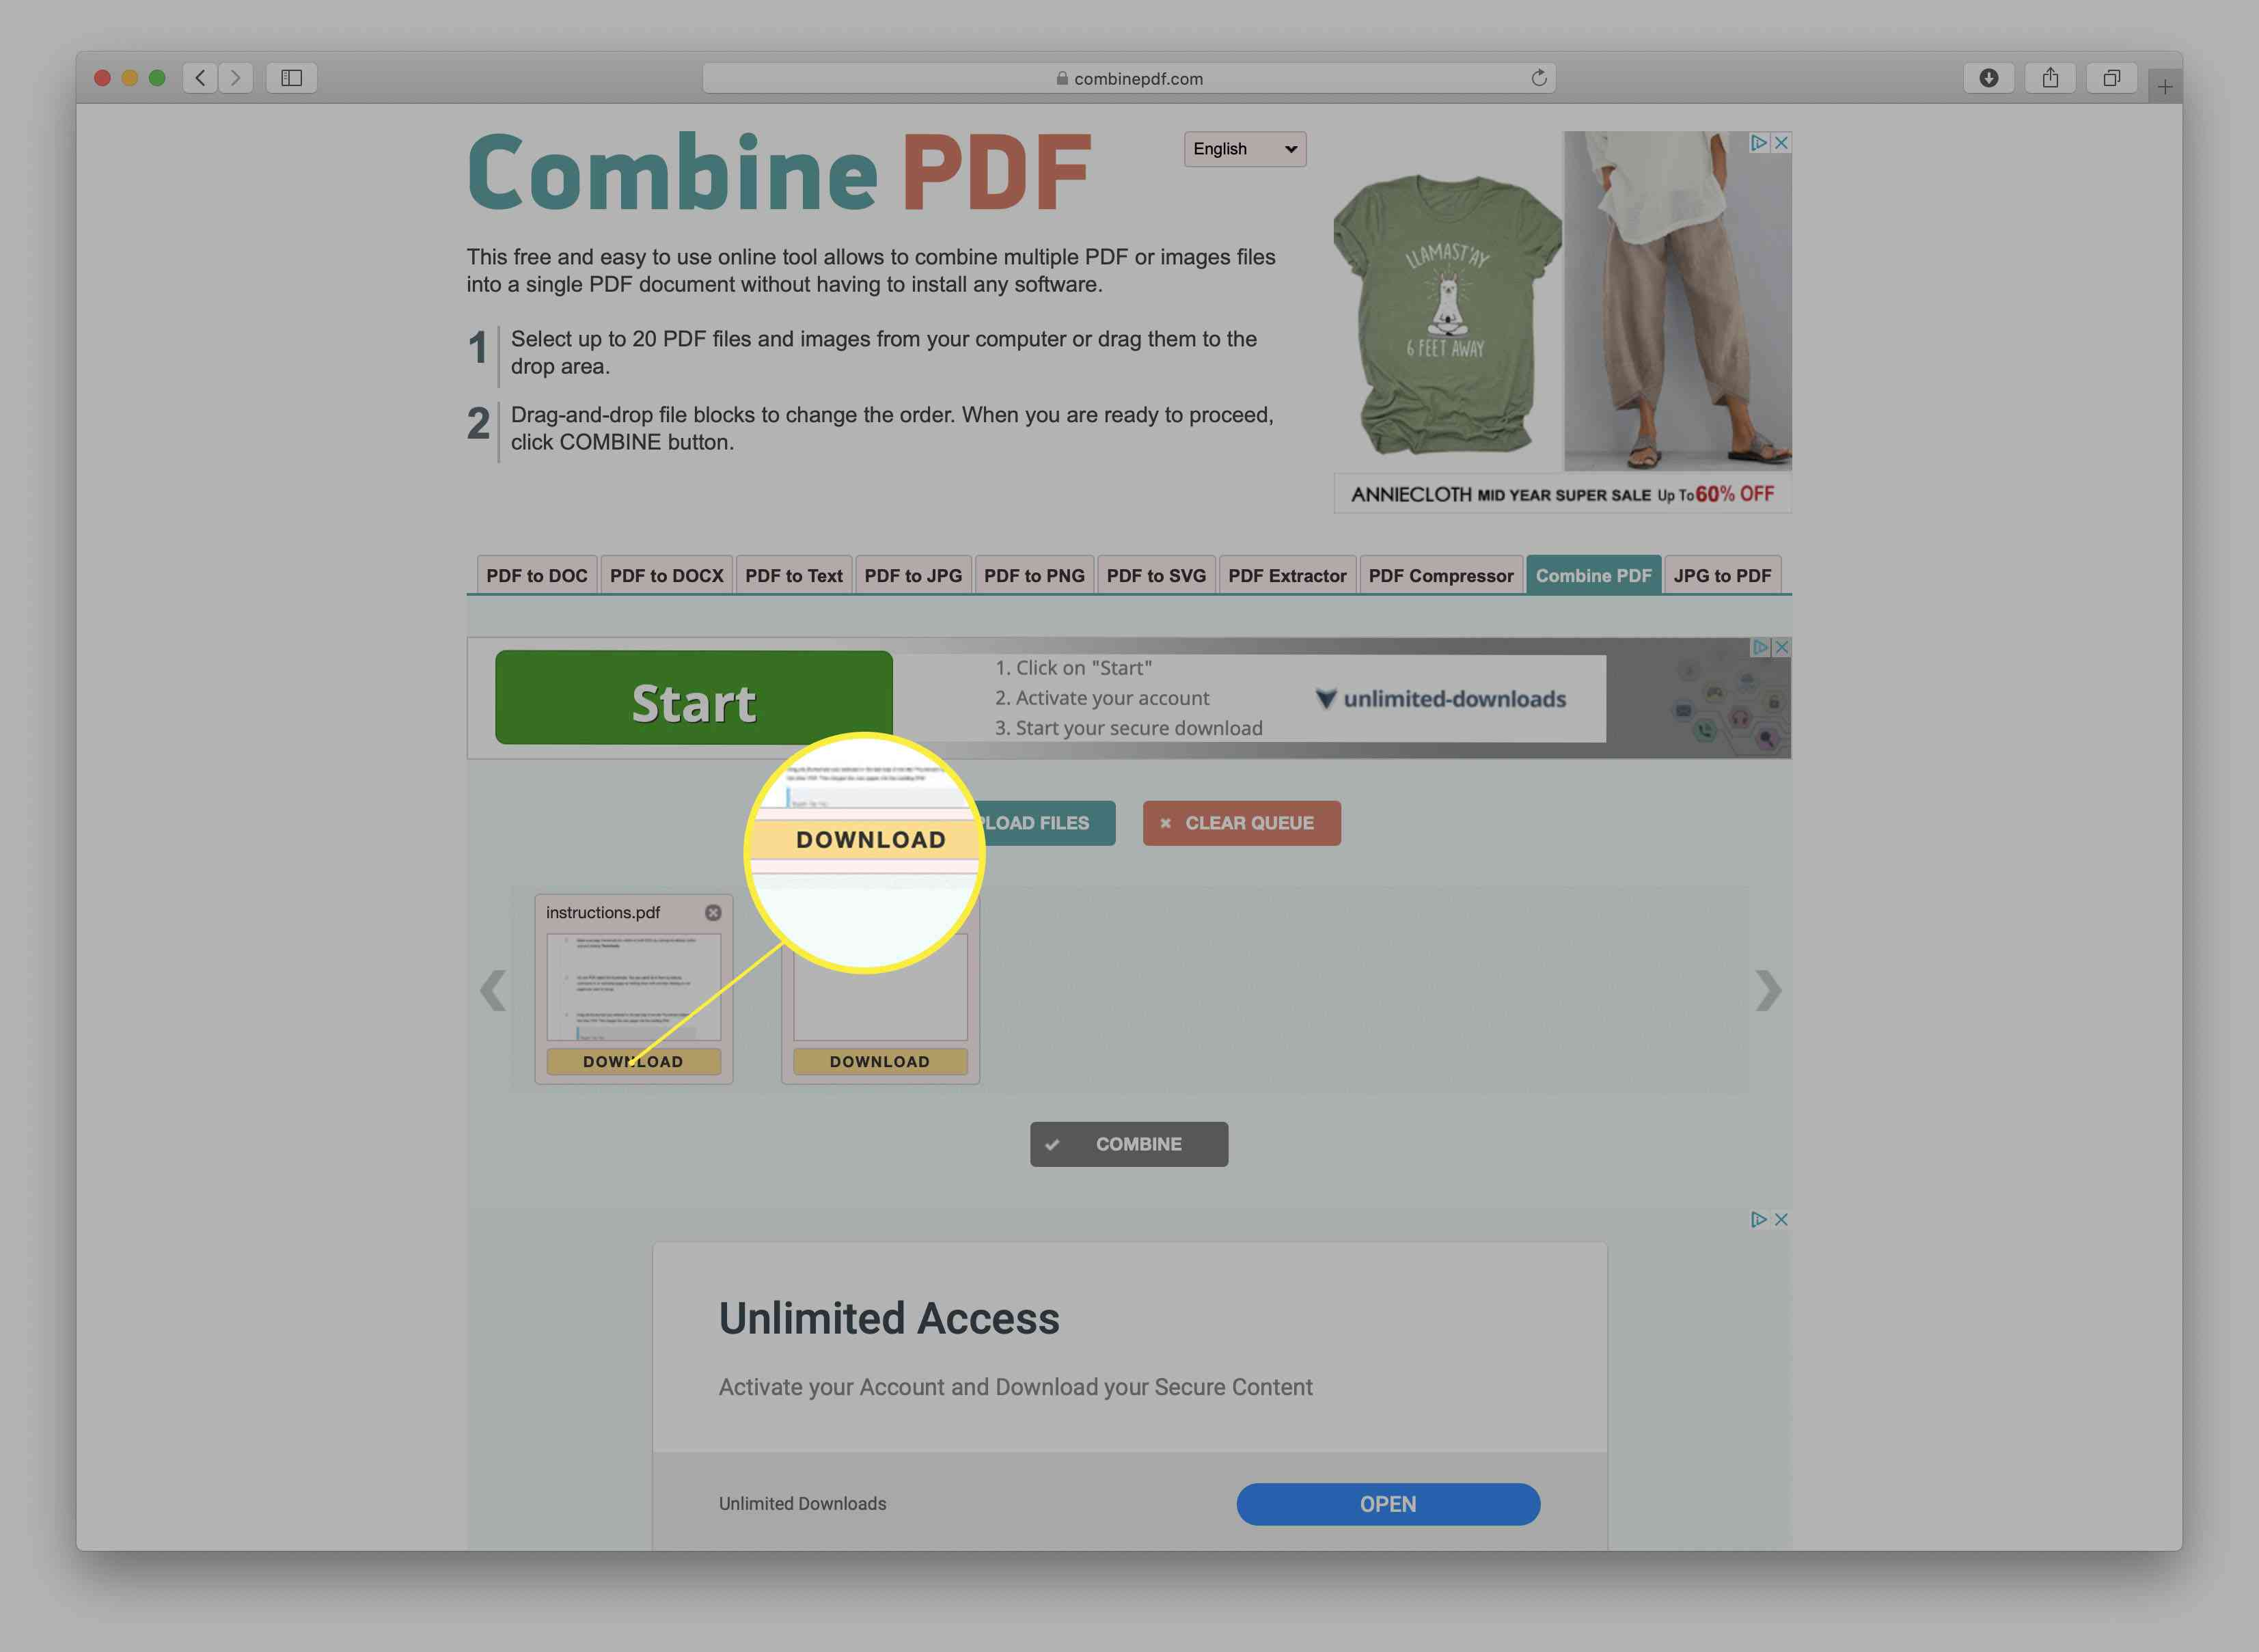 A screenshot of the merged PDFs are ready to download on the CombinePDF site.